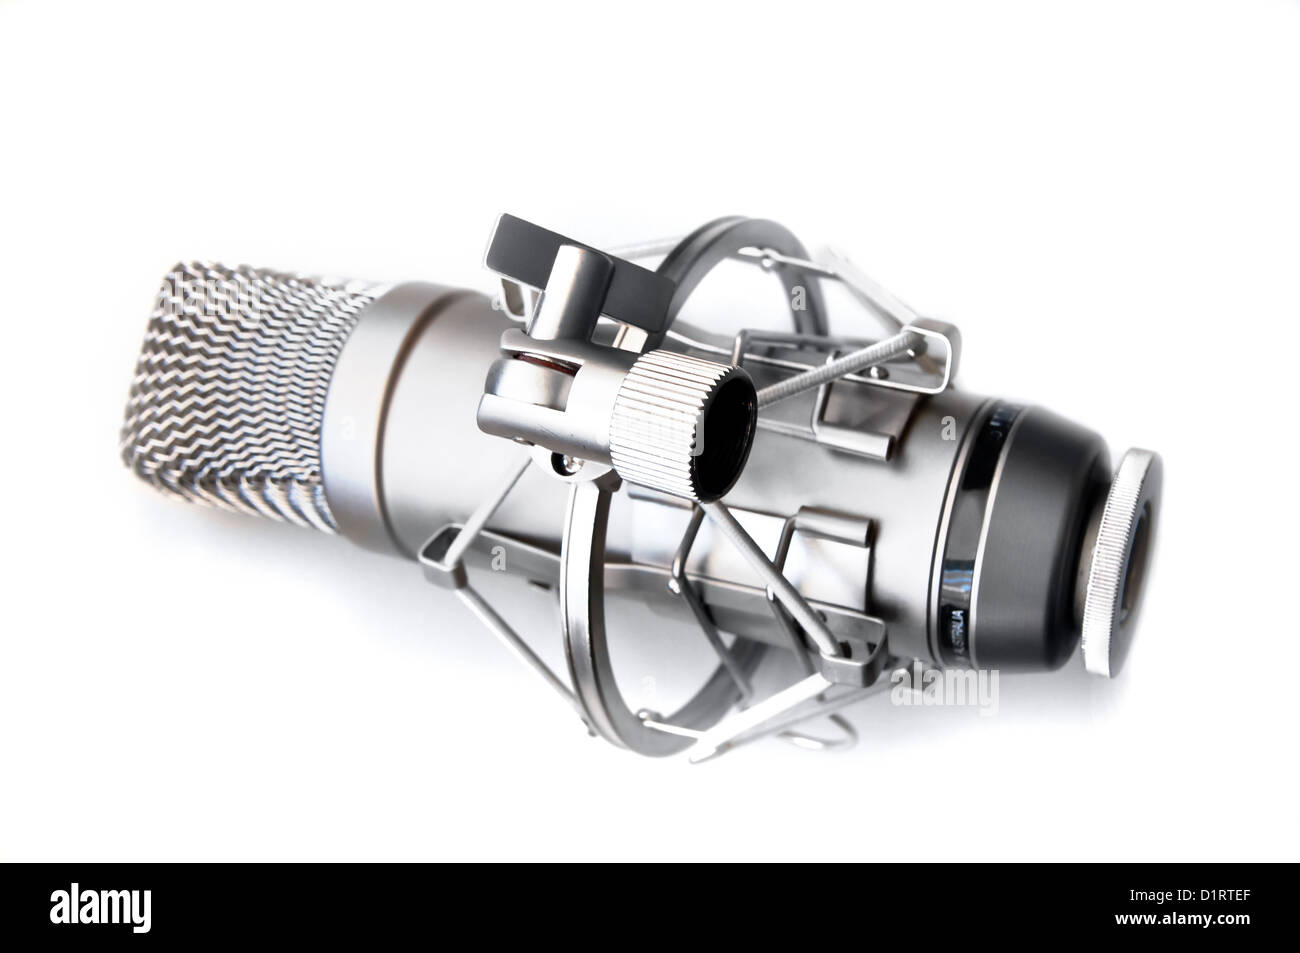 closeup of vintage microphone on white background - Stock Image